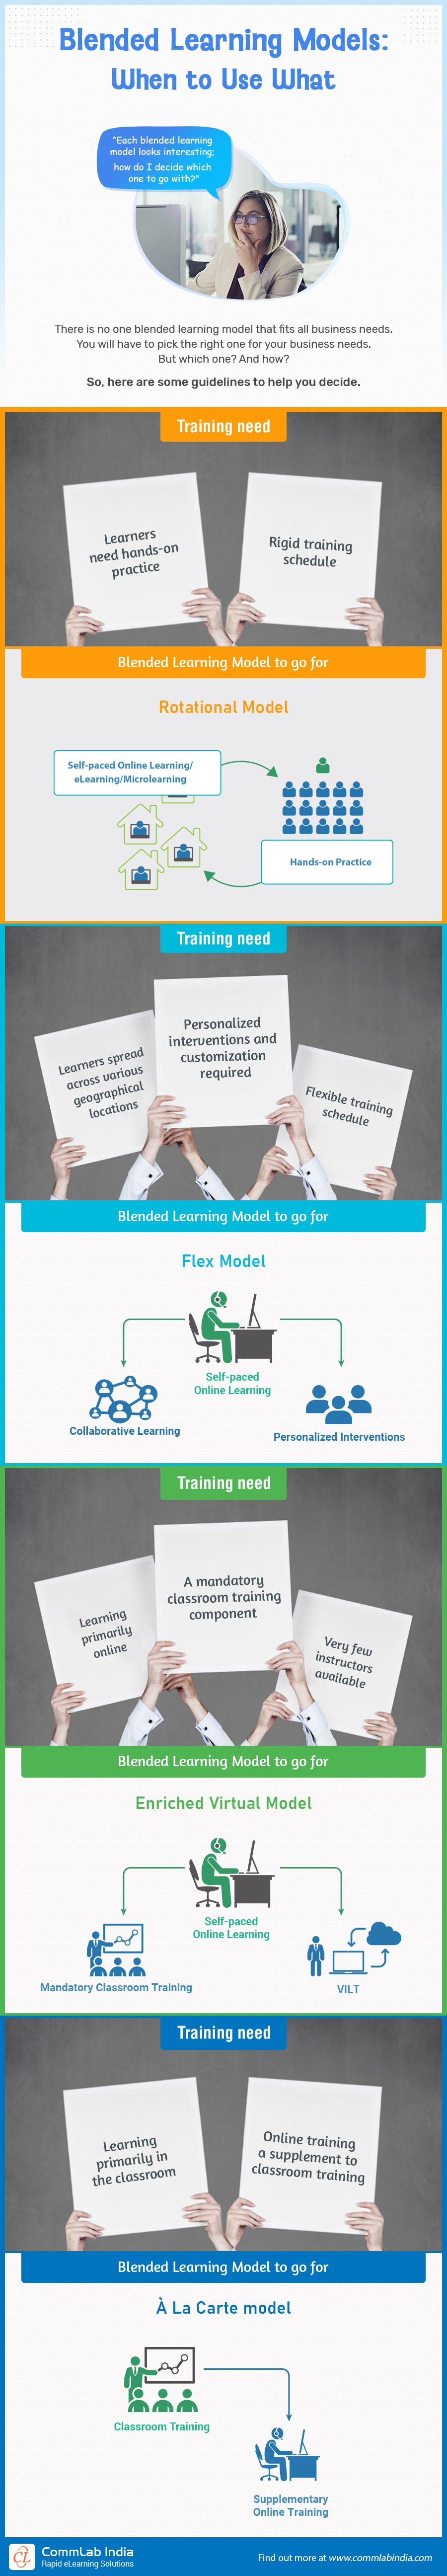 Blended Learning Models: How to Choose the Right Fit?